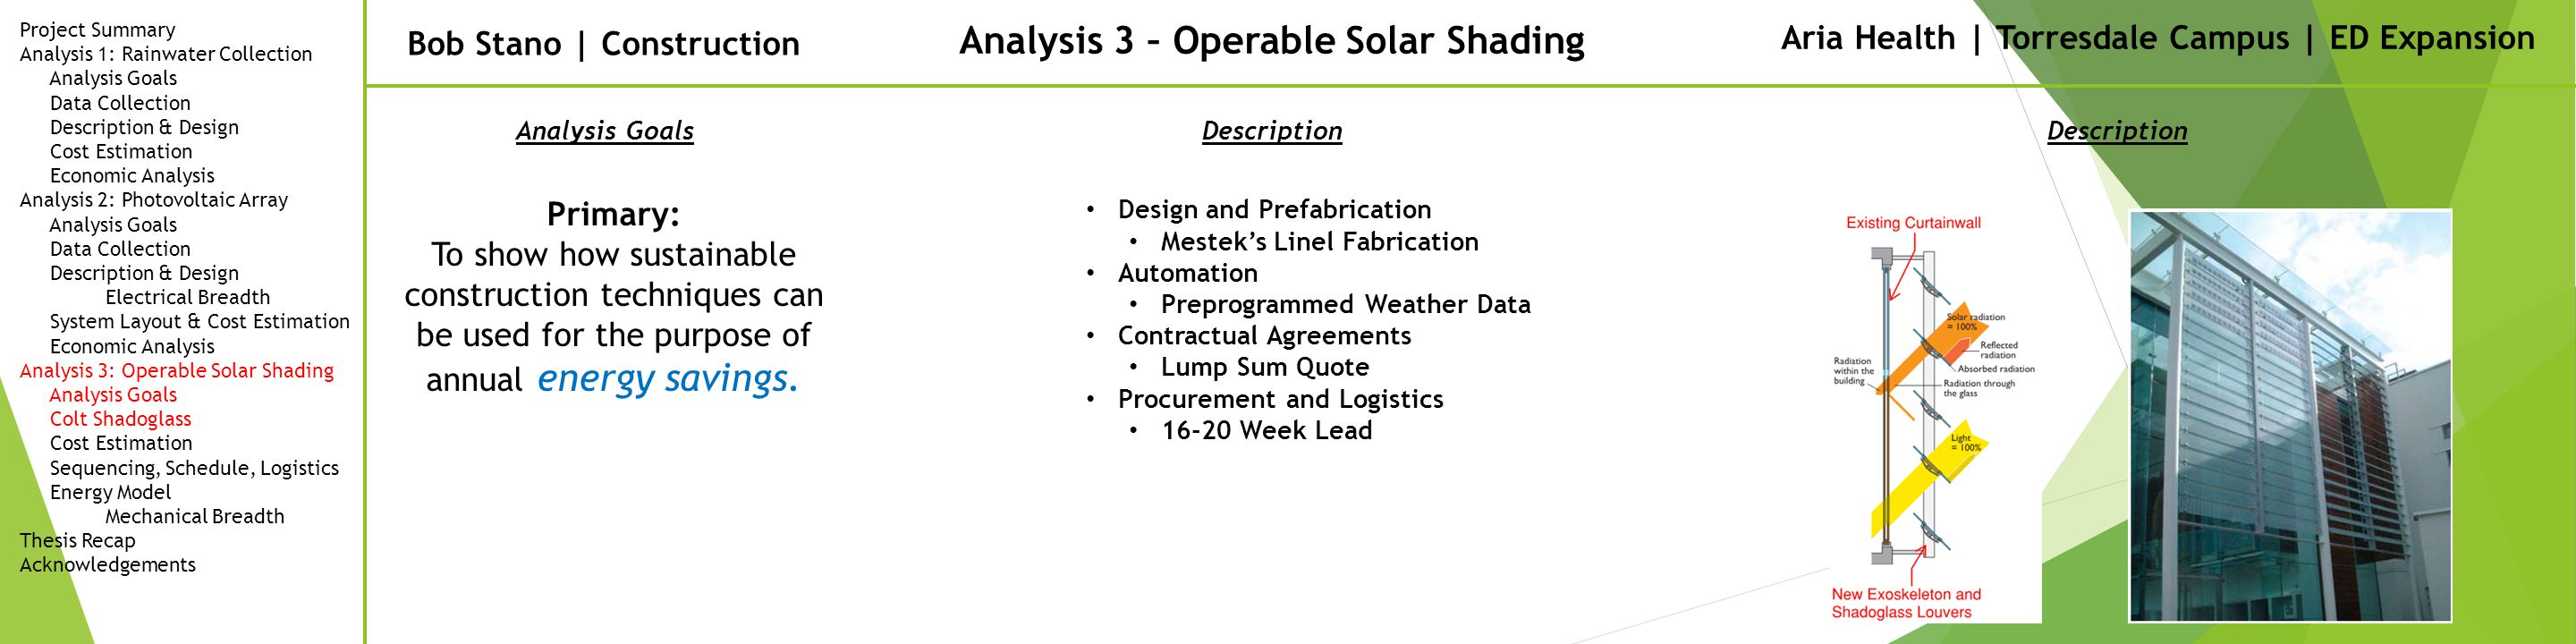 Bob Stano | Construction Aria Health | Torresdale Campus | ED Expansion Analysis 3 – Operable Solar Shading Primary: To show how sustainable construction techniques can be used for the purpose of annual energy savings.